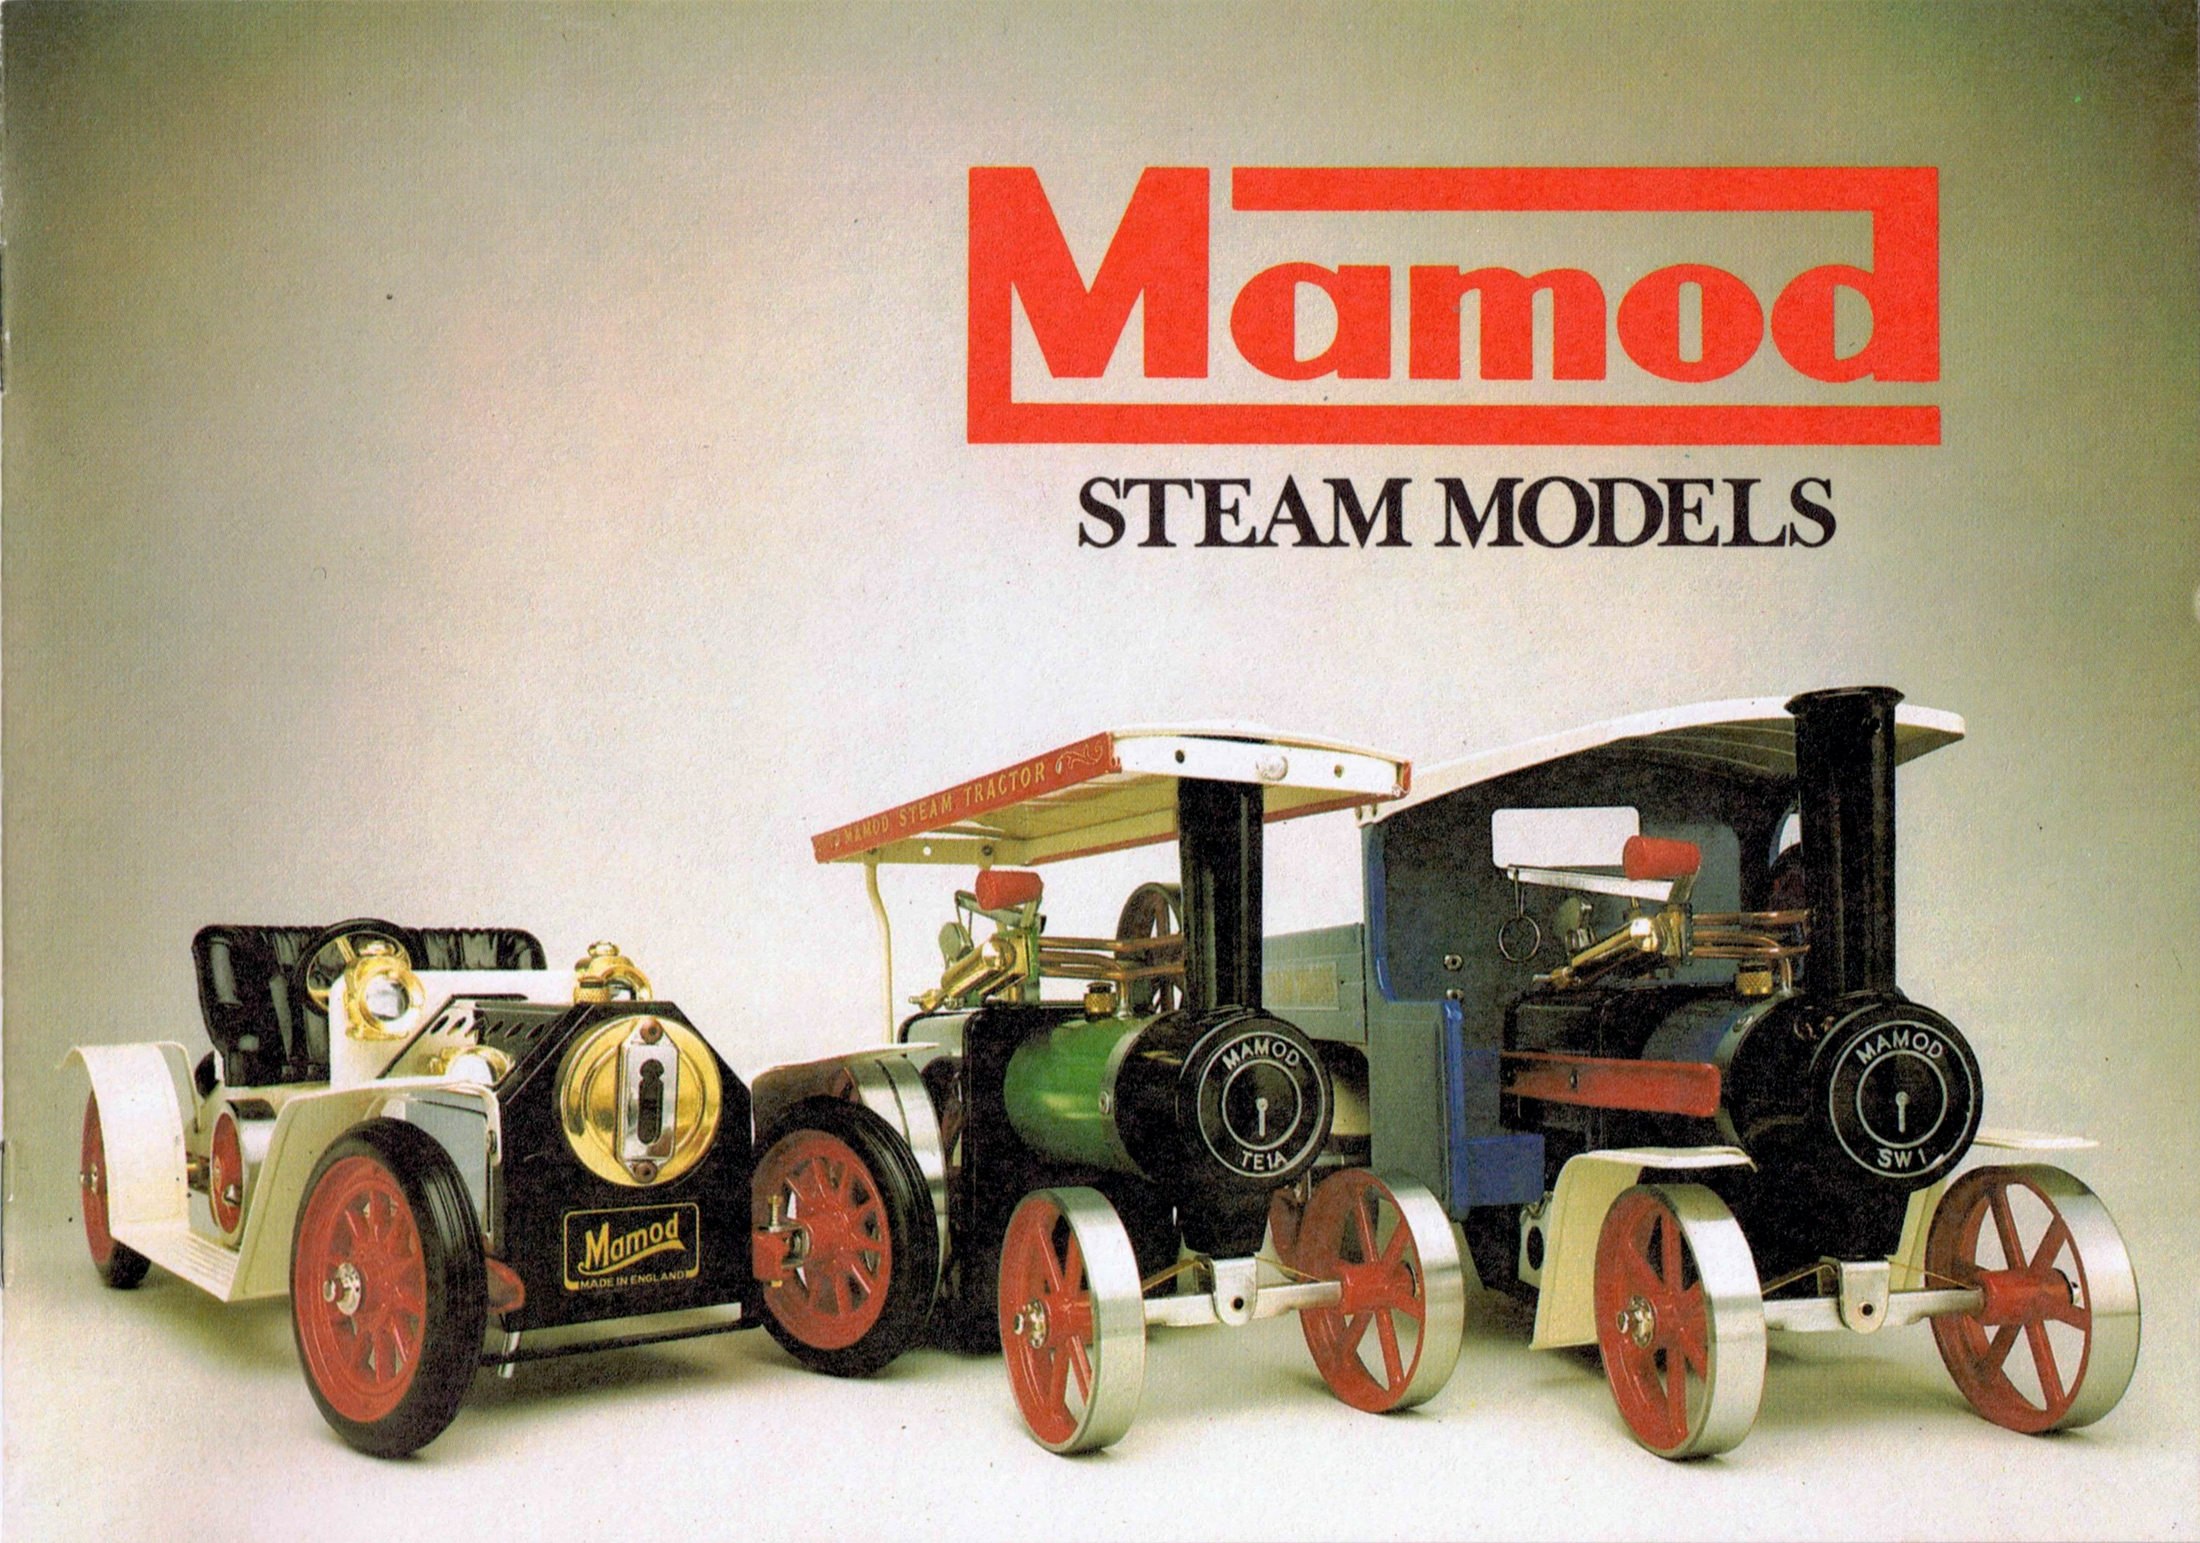 Mamod   U0026quot Malins Models U0026quot    Live Steam Models And Stationary Engines  1935